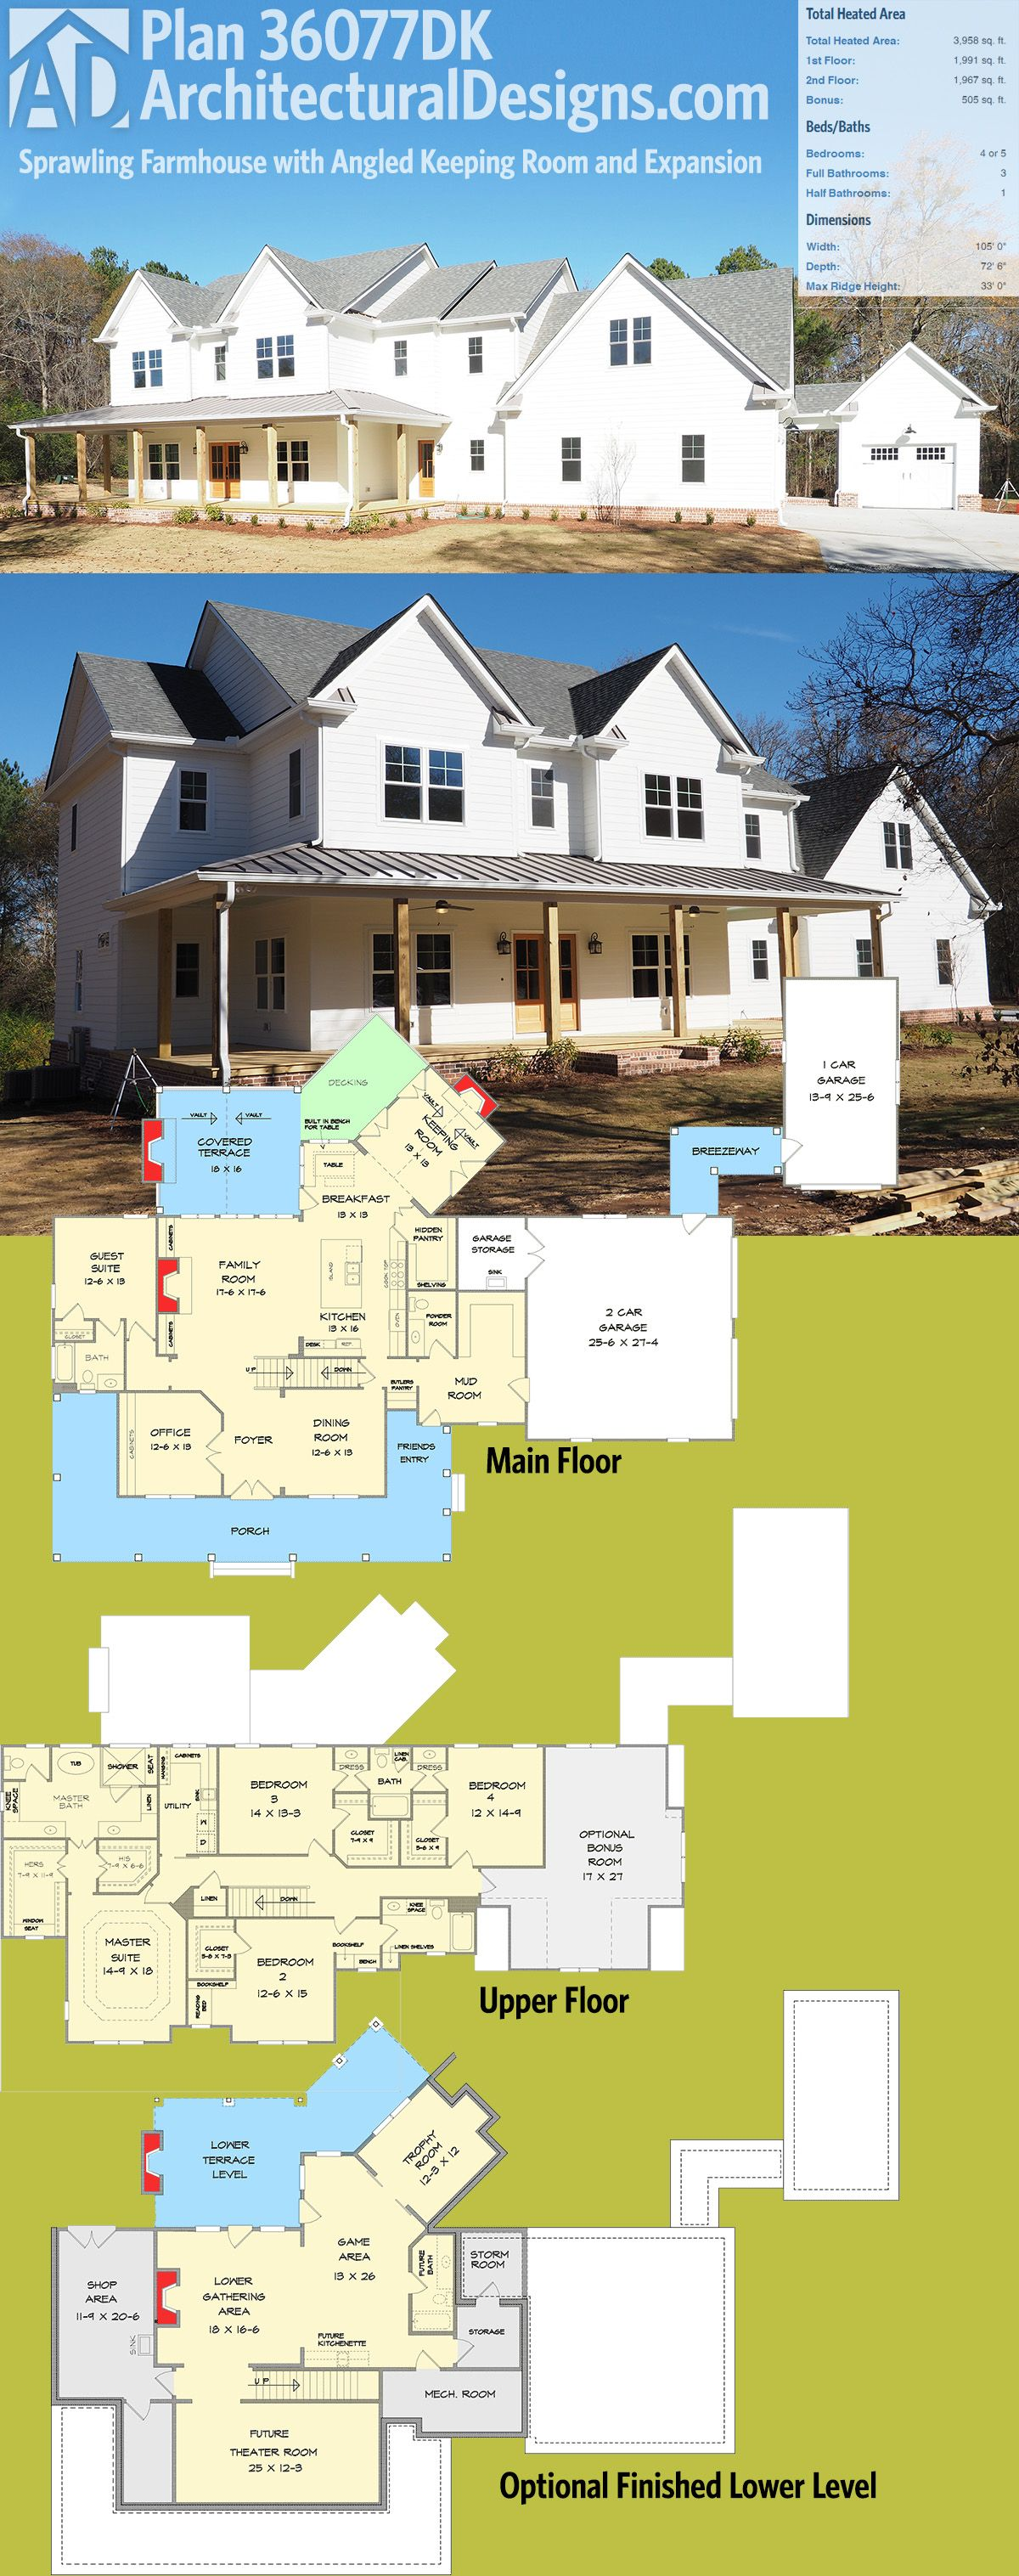 Architectural designs house plan 36077dk is a sprawling farmhouse plan with an angled keeping - House plans with bonus rooms upstairs ...